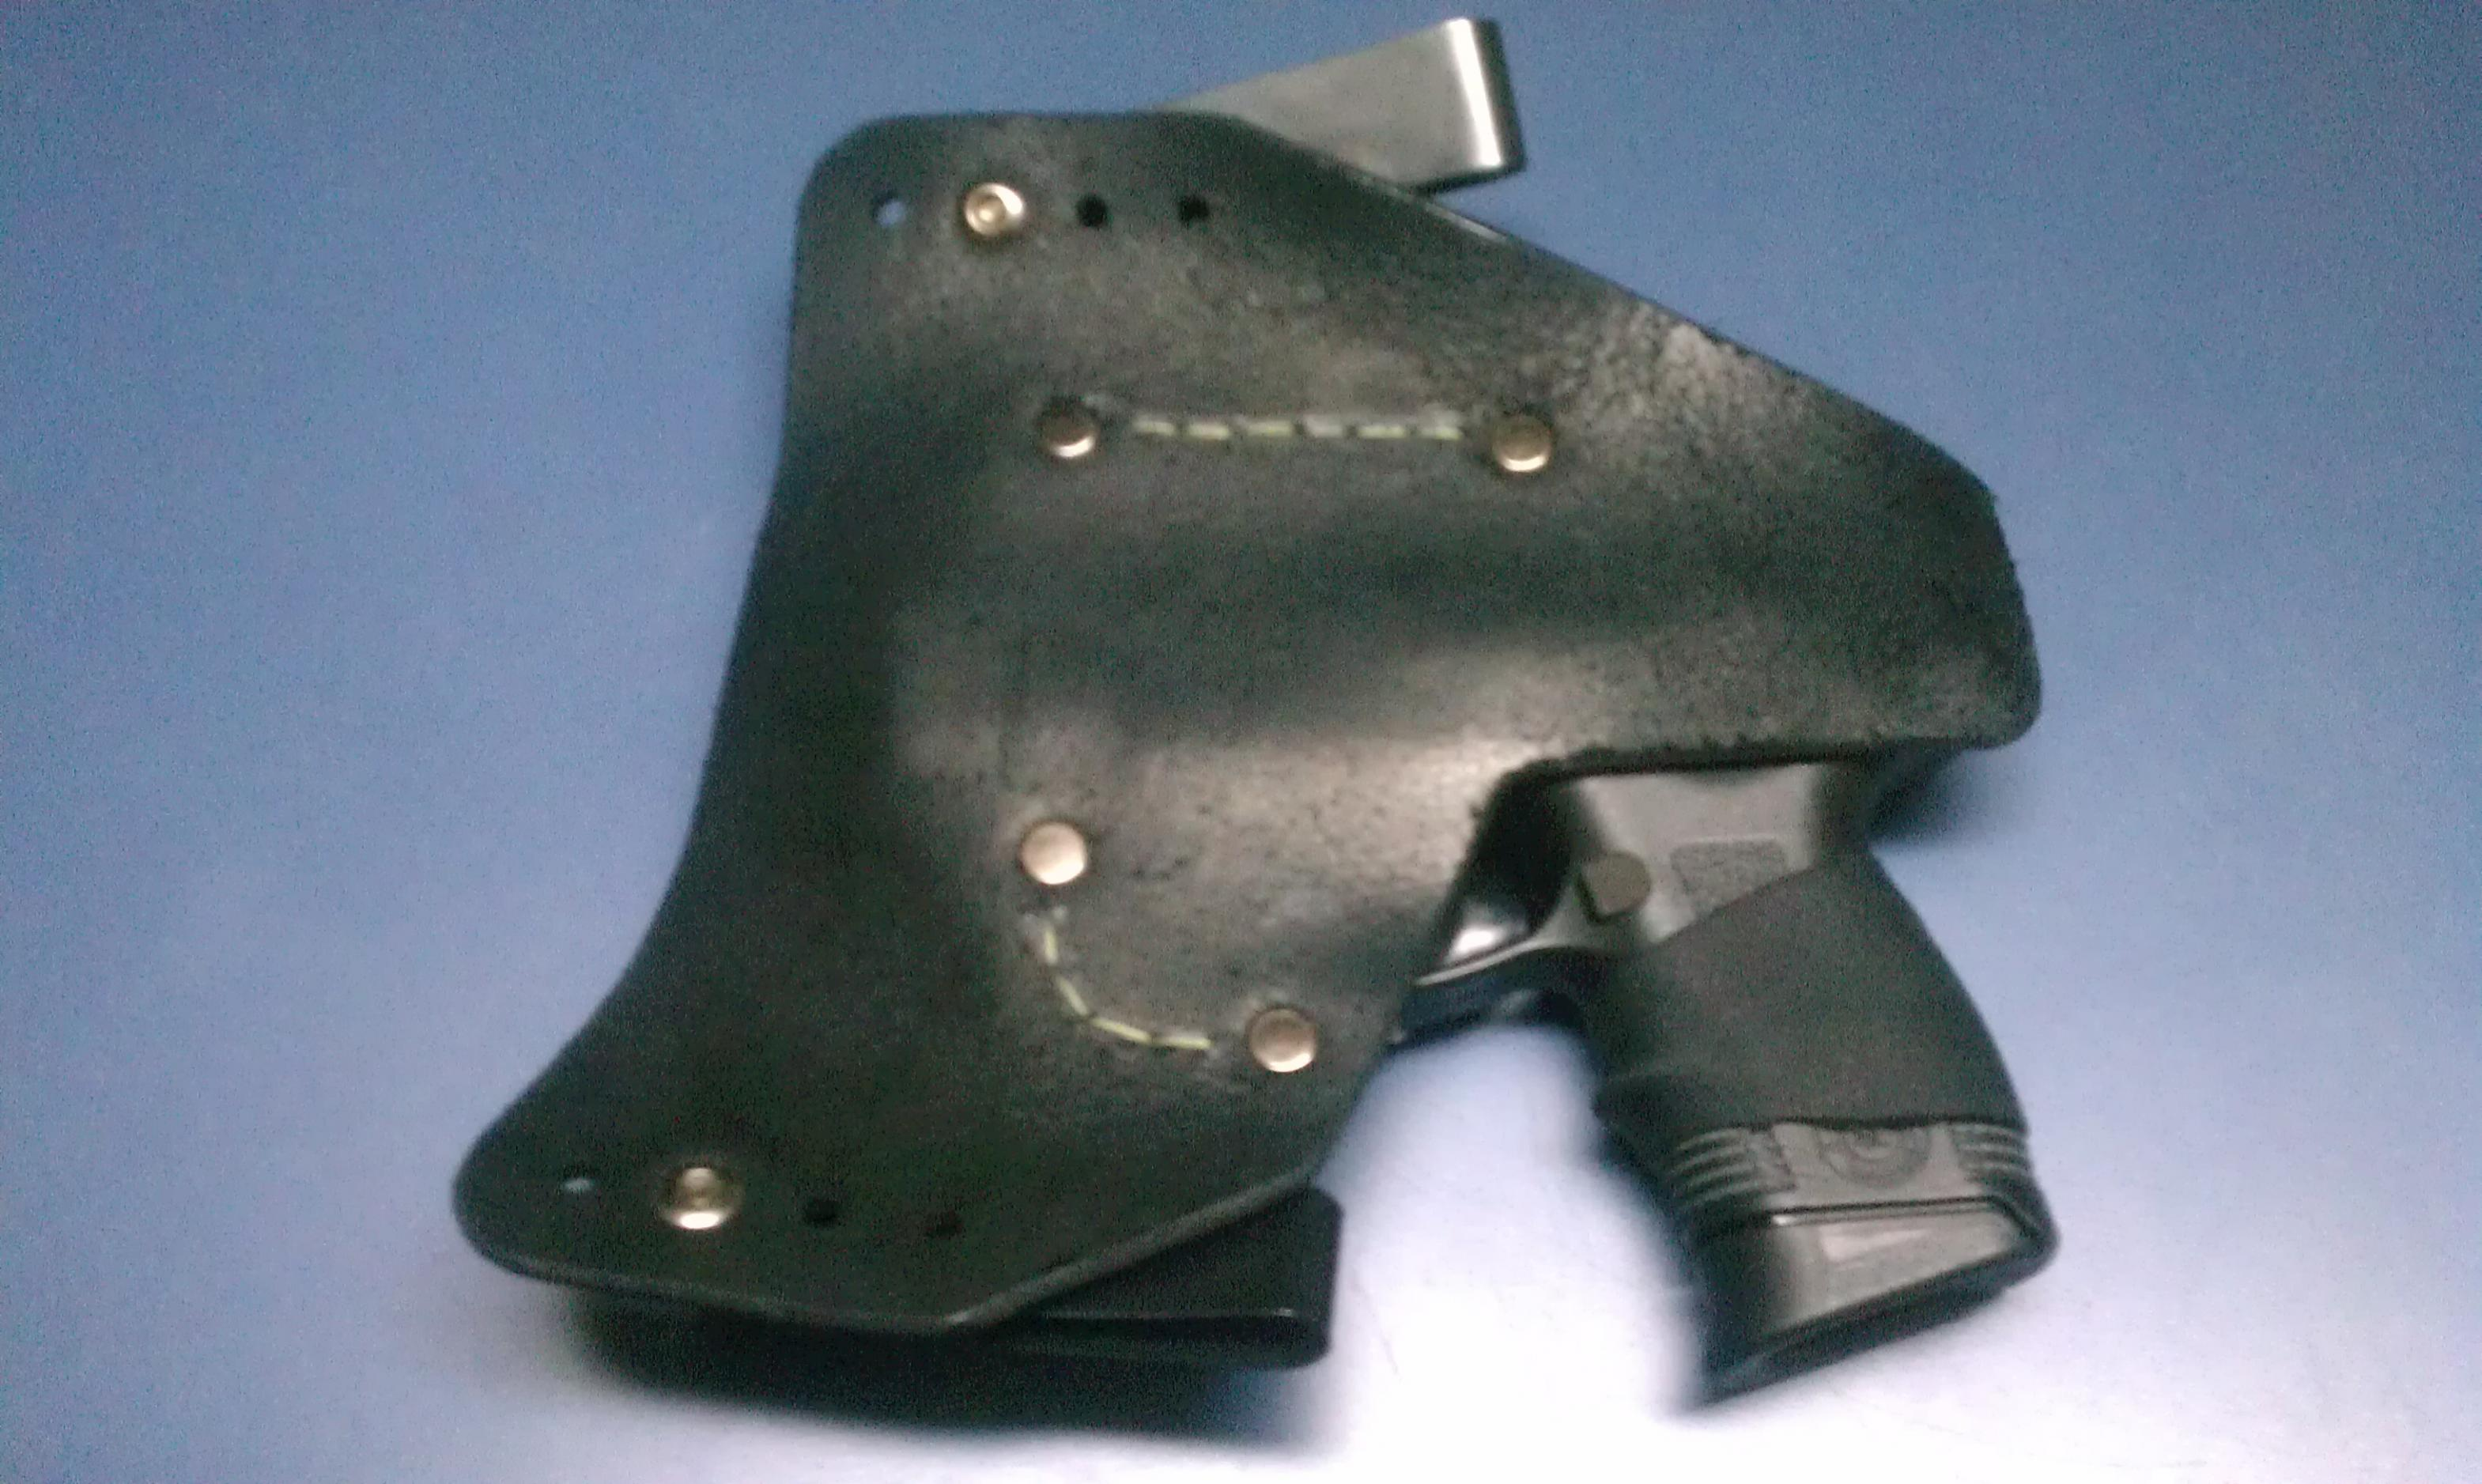 My new SHTF gear ACE-1 IWB holster-uploadfromtaptalk1312344965843.jpg